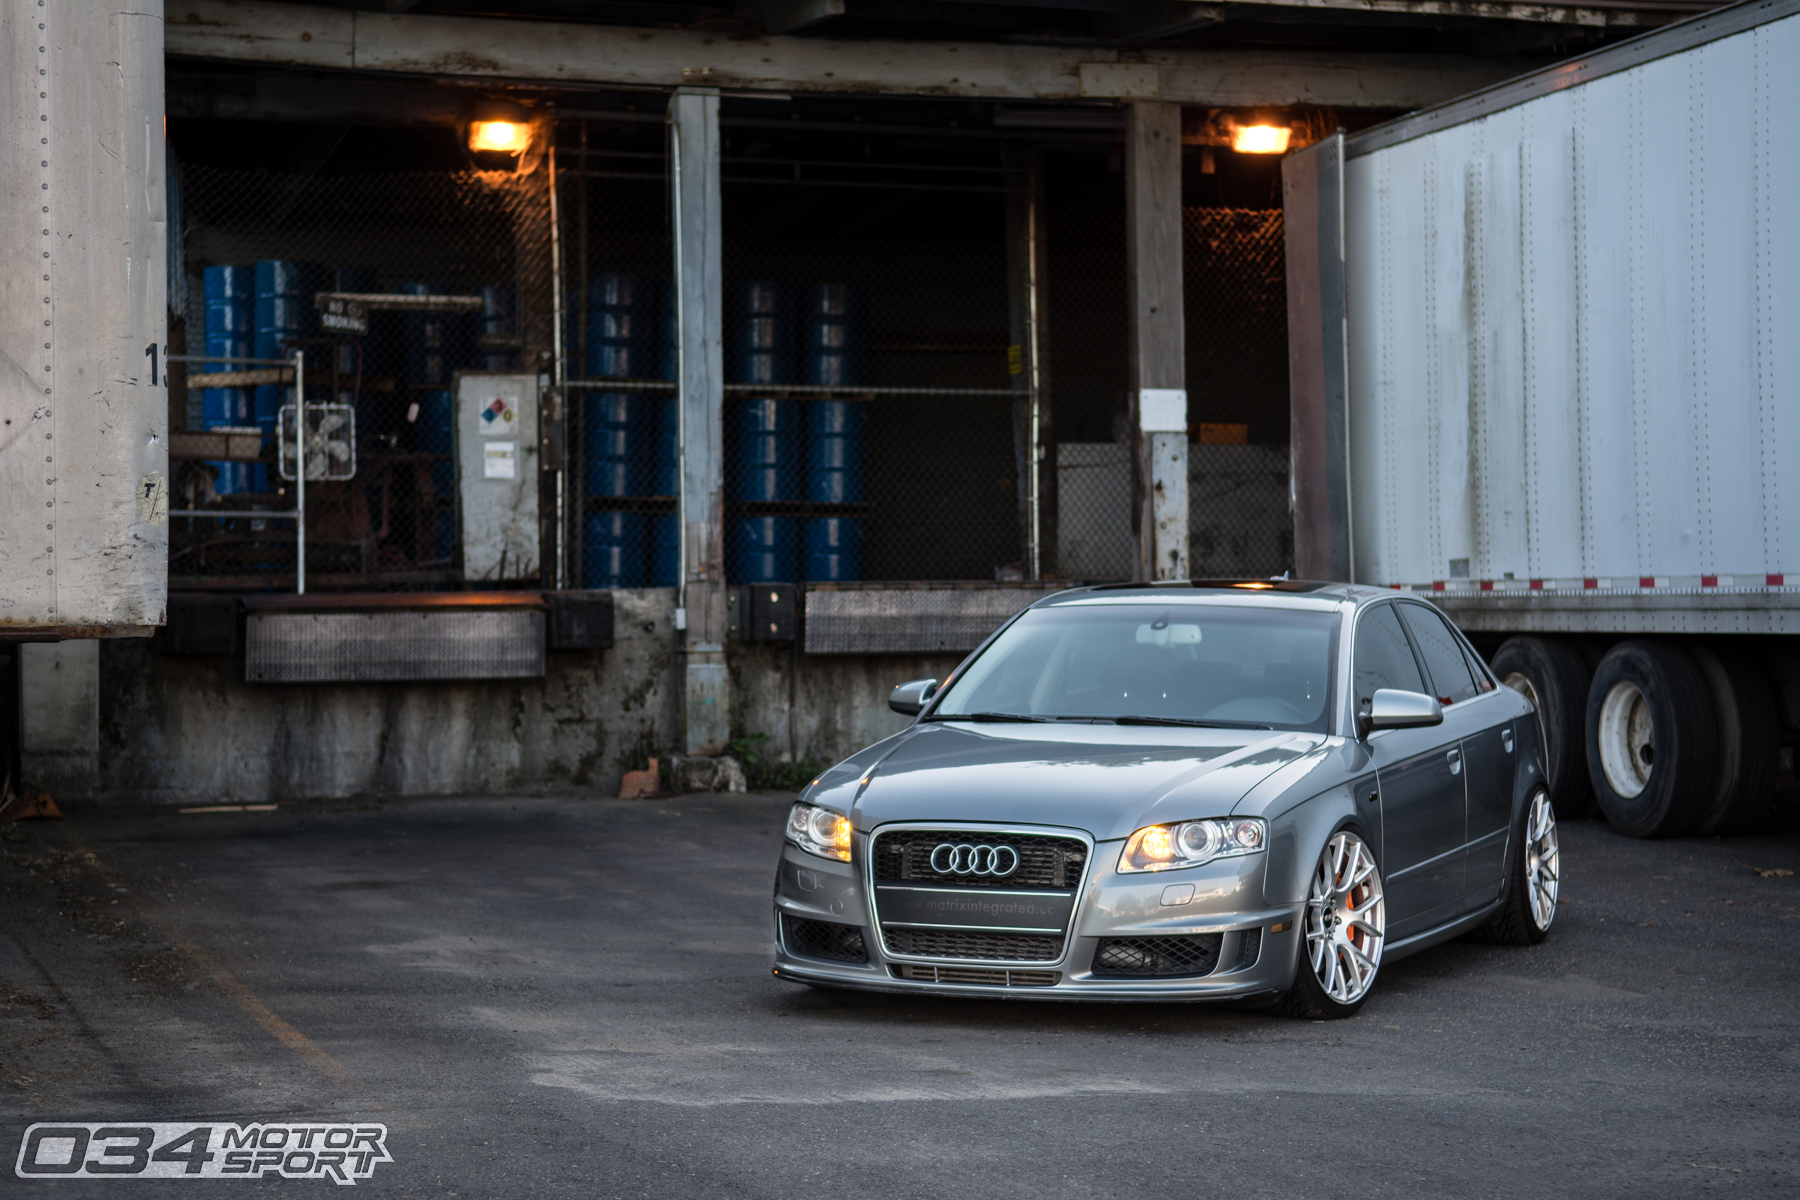 Modified B7 Audi A4 2.0T FSI 6-Speed Quattro